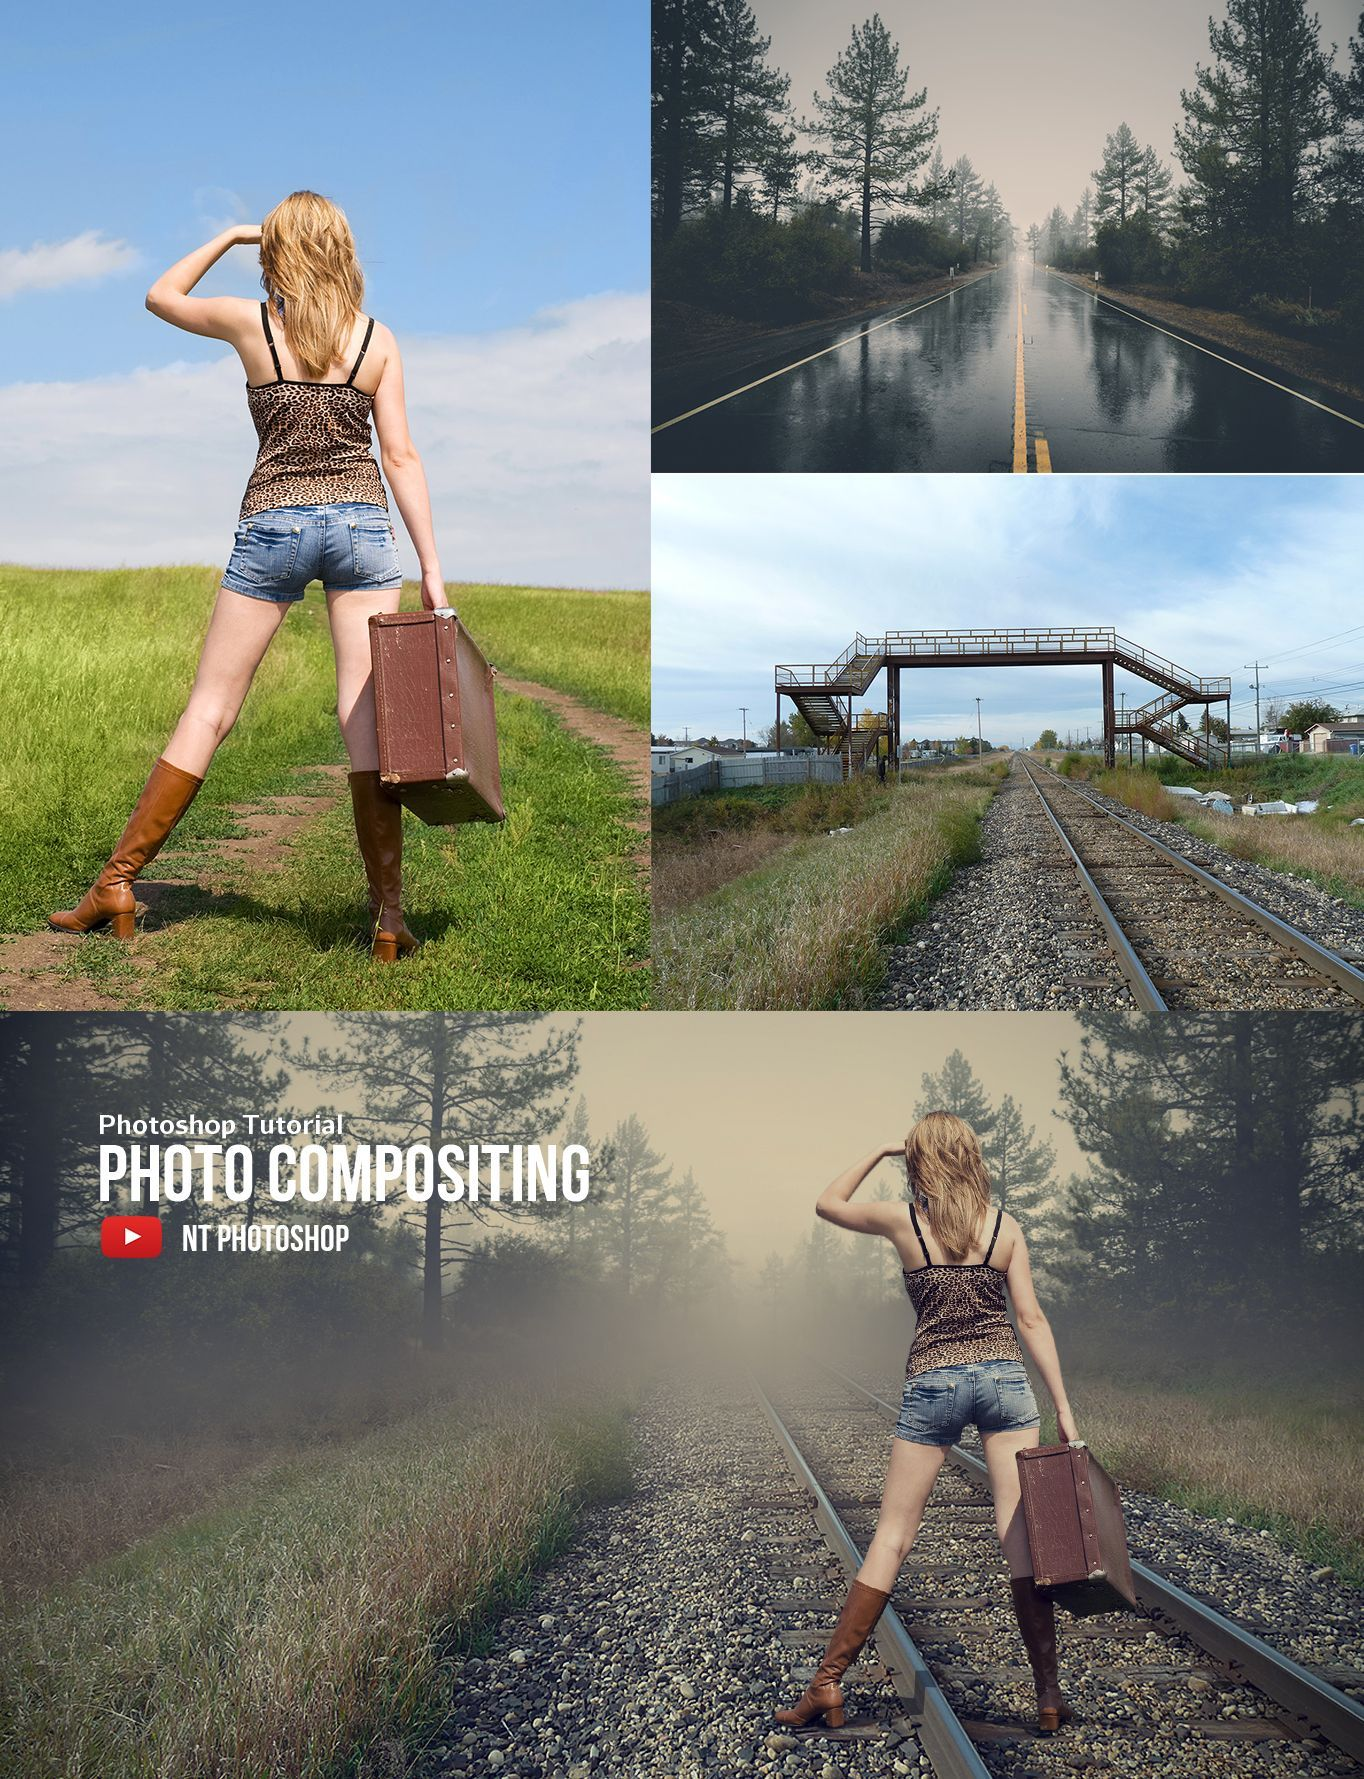 How to create a composite image in photoshop tutorial https how to create a composite image in photoshop tutorial https baditri Images